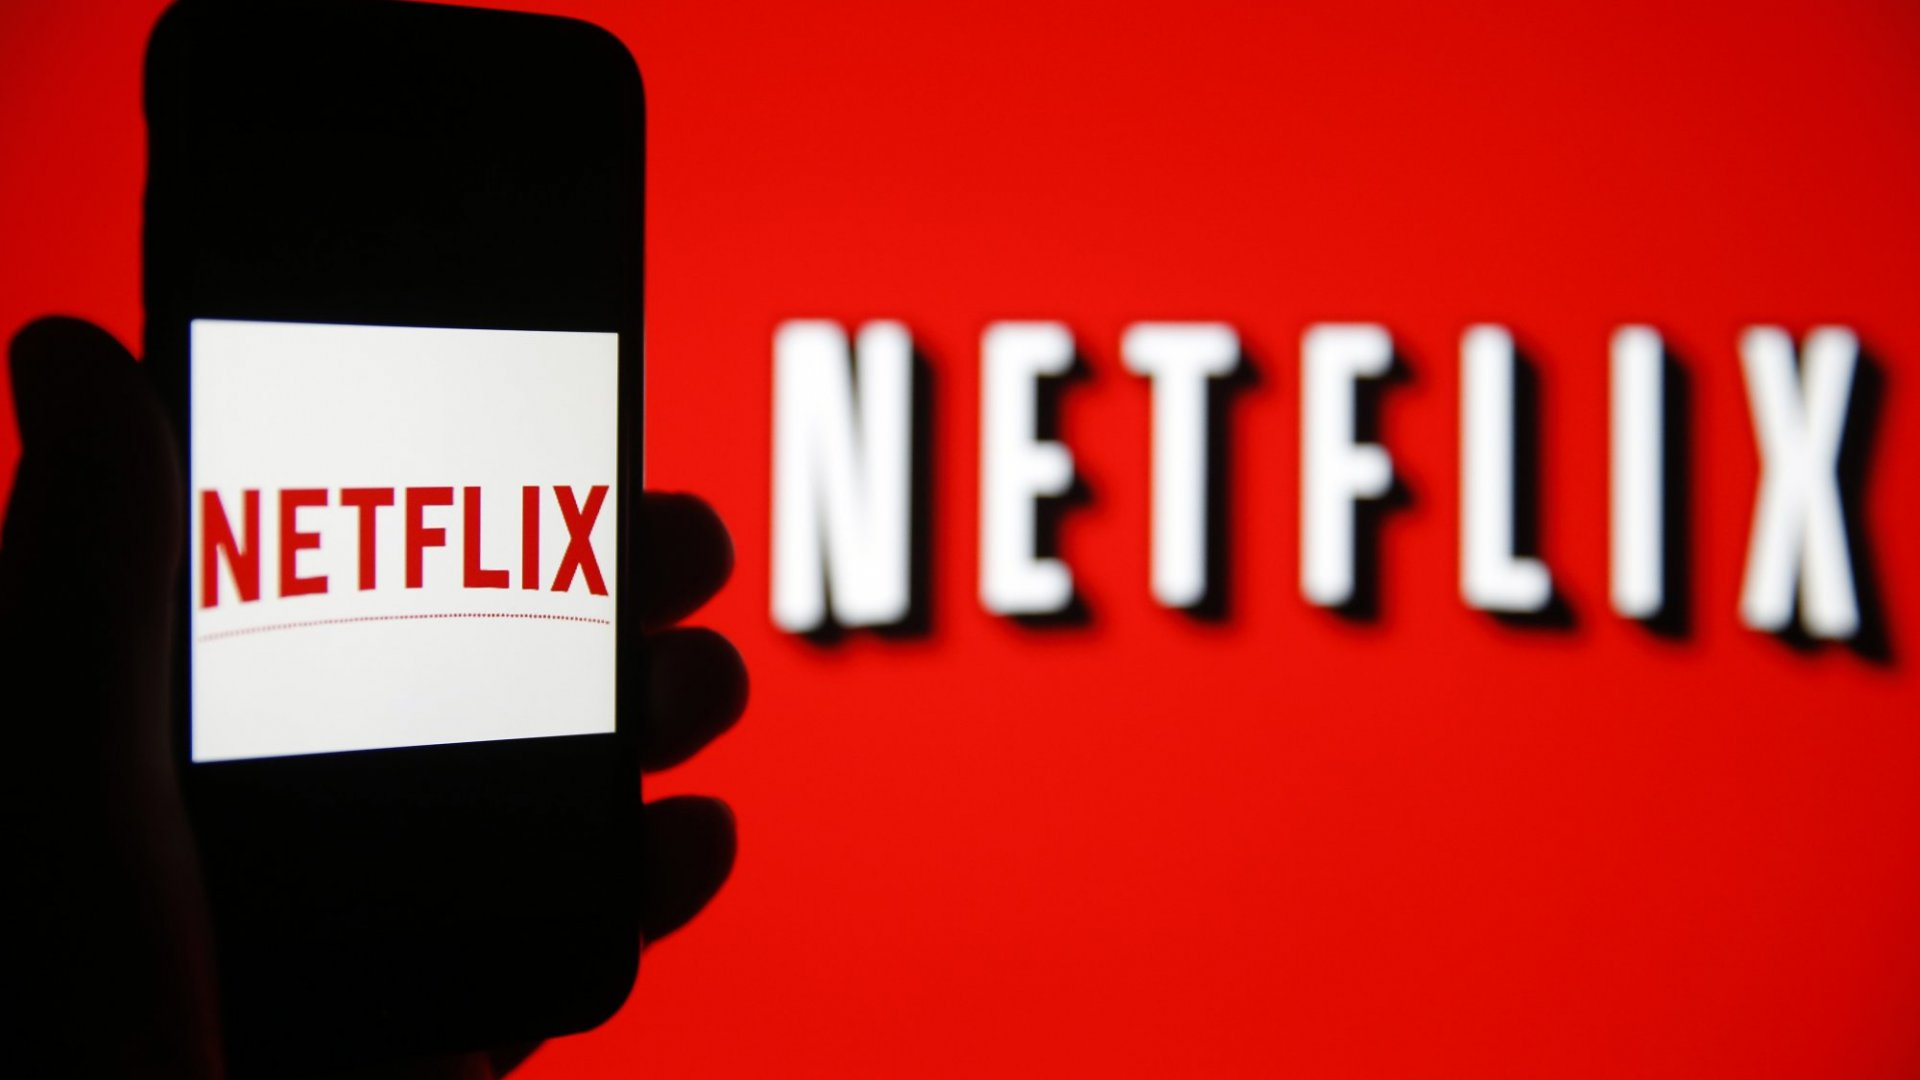 Netflix Is Testing a Really Weird Feature. How You Watch Netflix May Never Be the Same